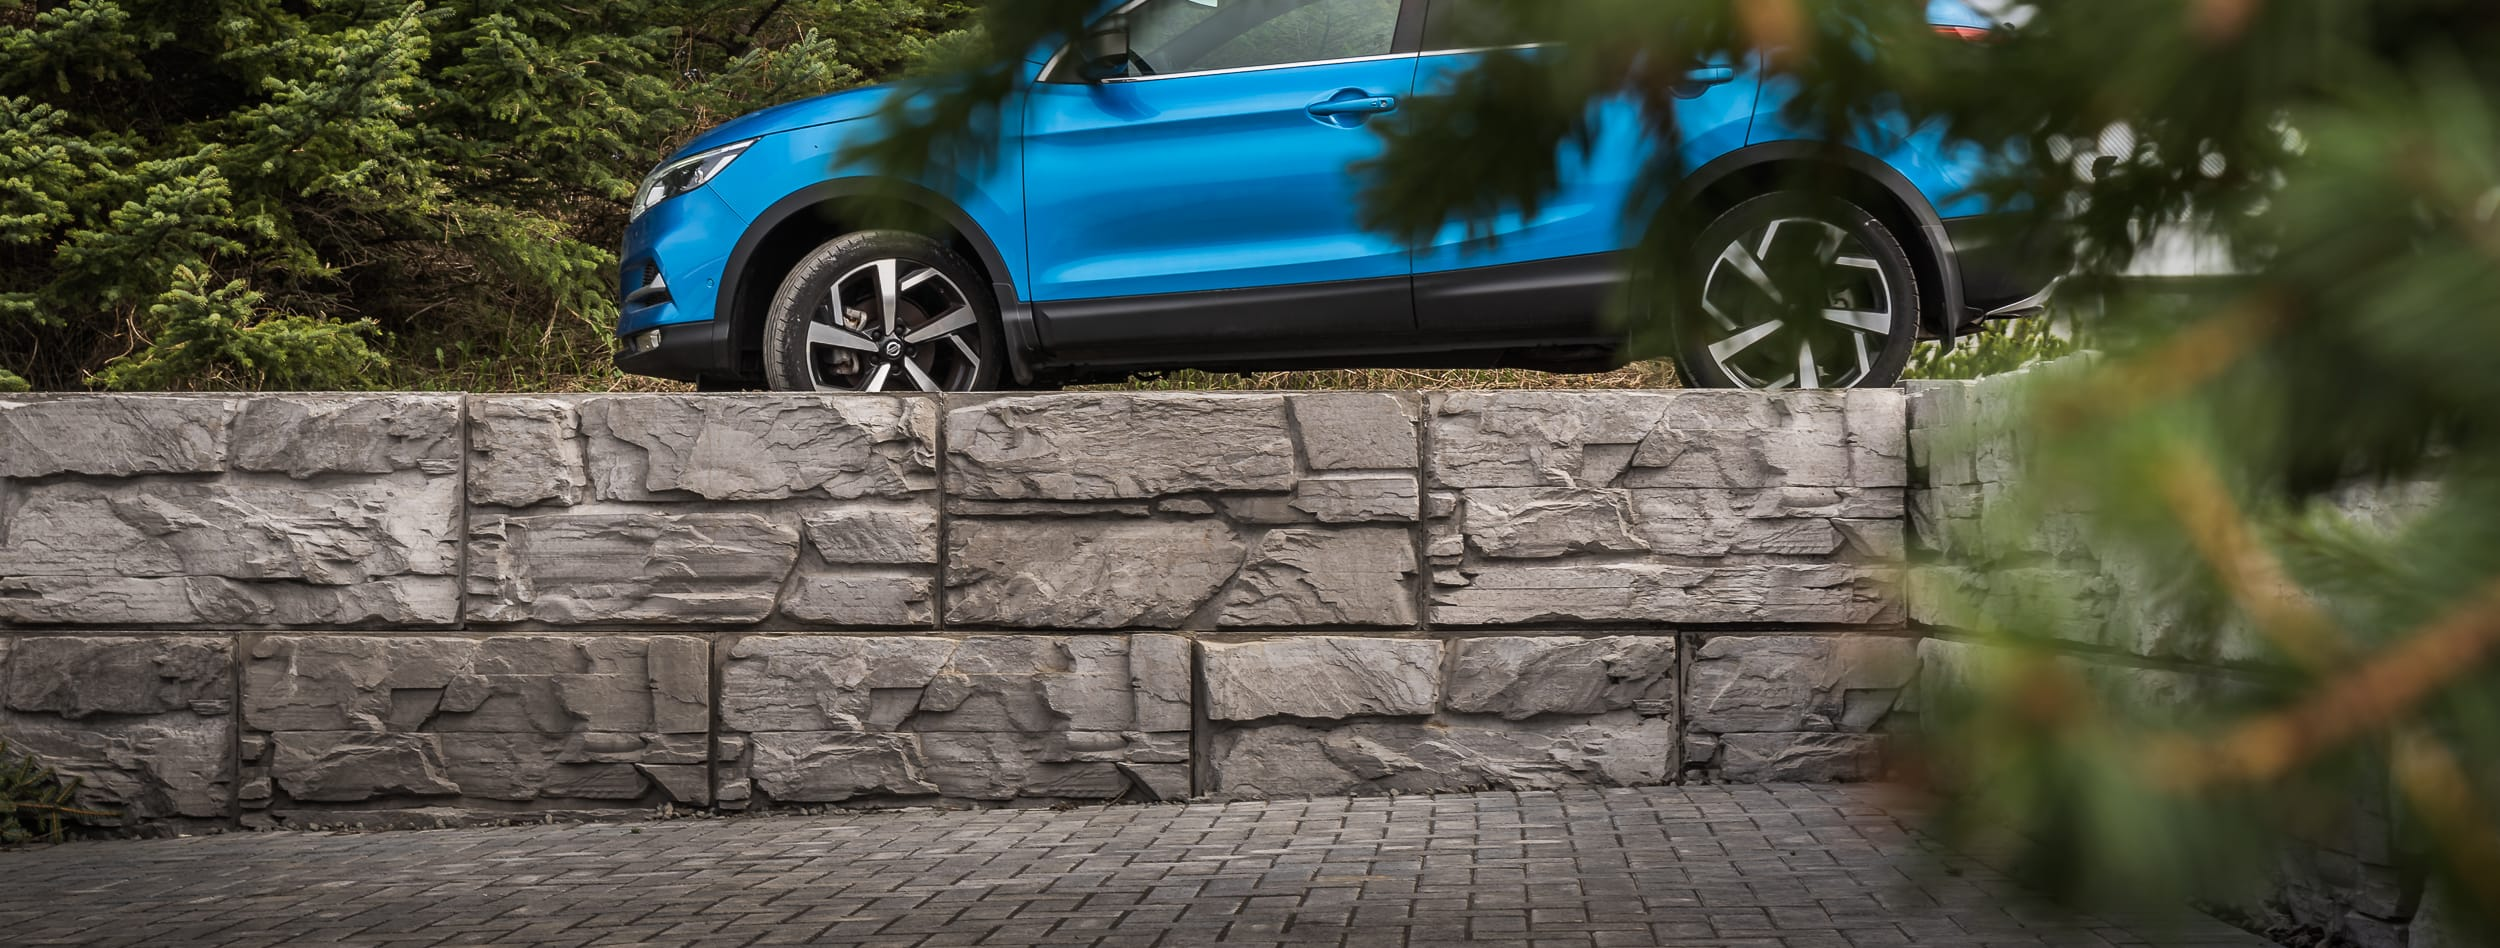 Retaining-Wall-Big-Block-MagnumStone-Natural-LedgeFace